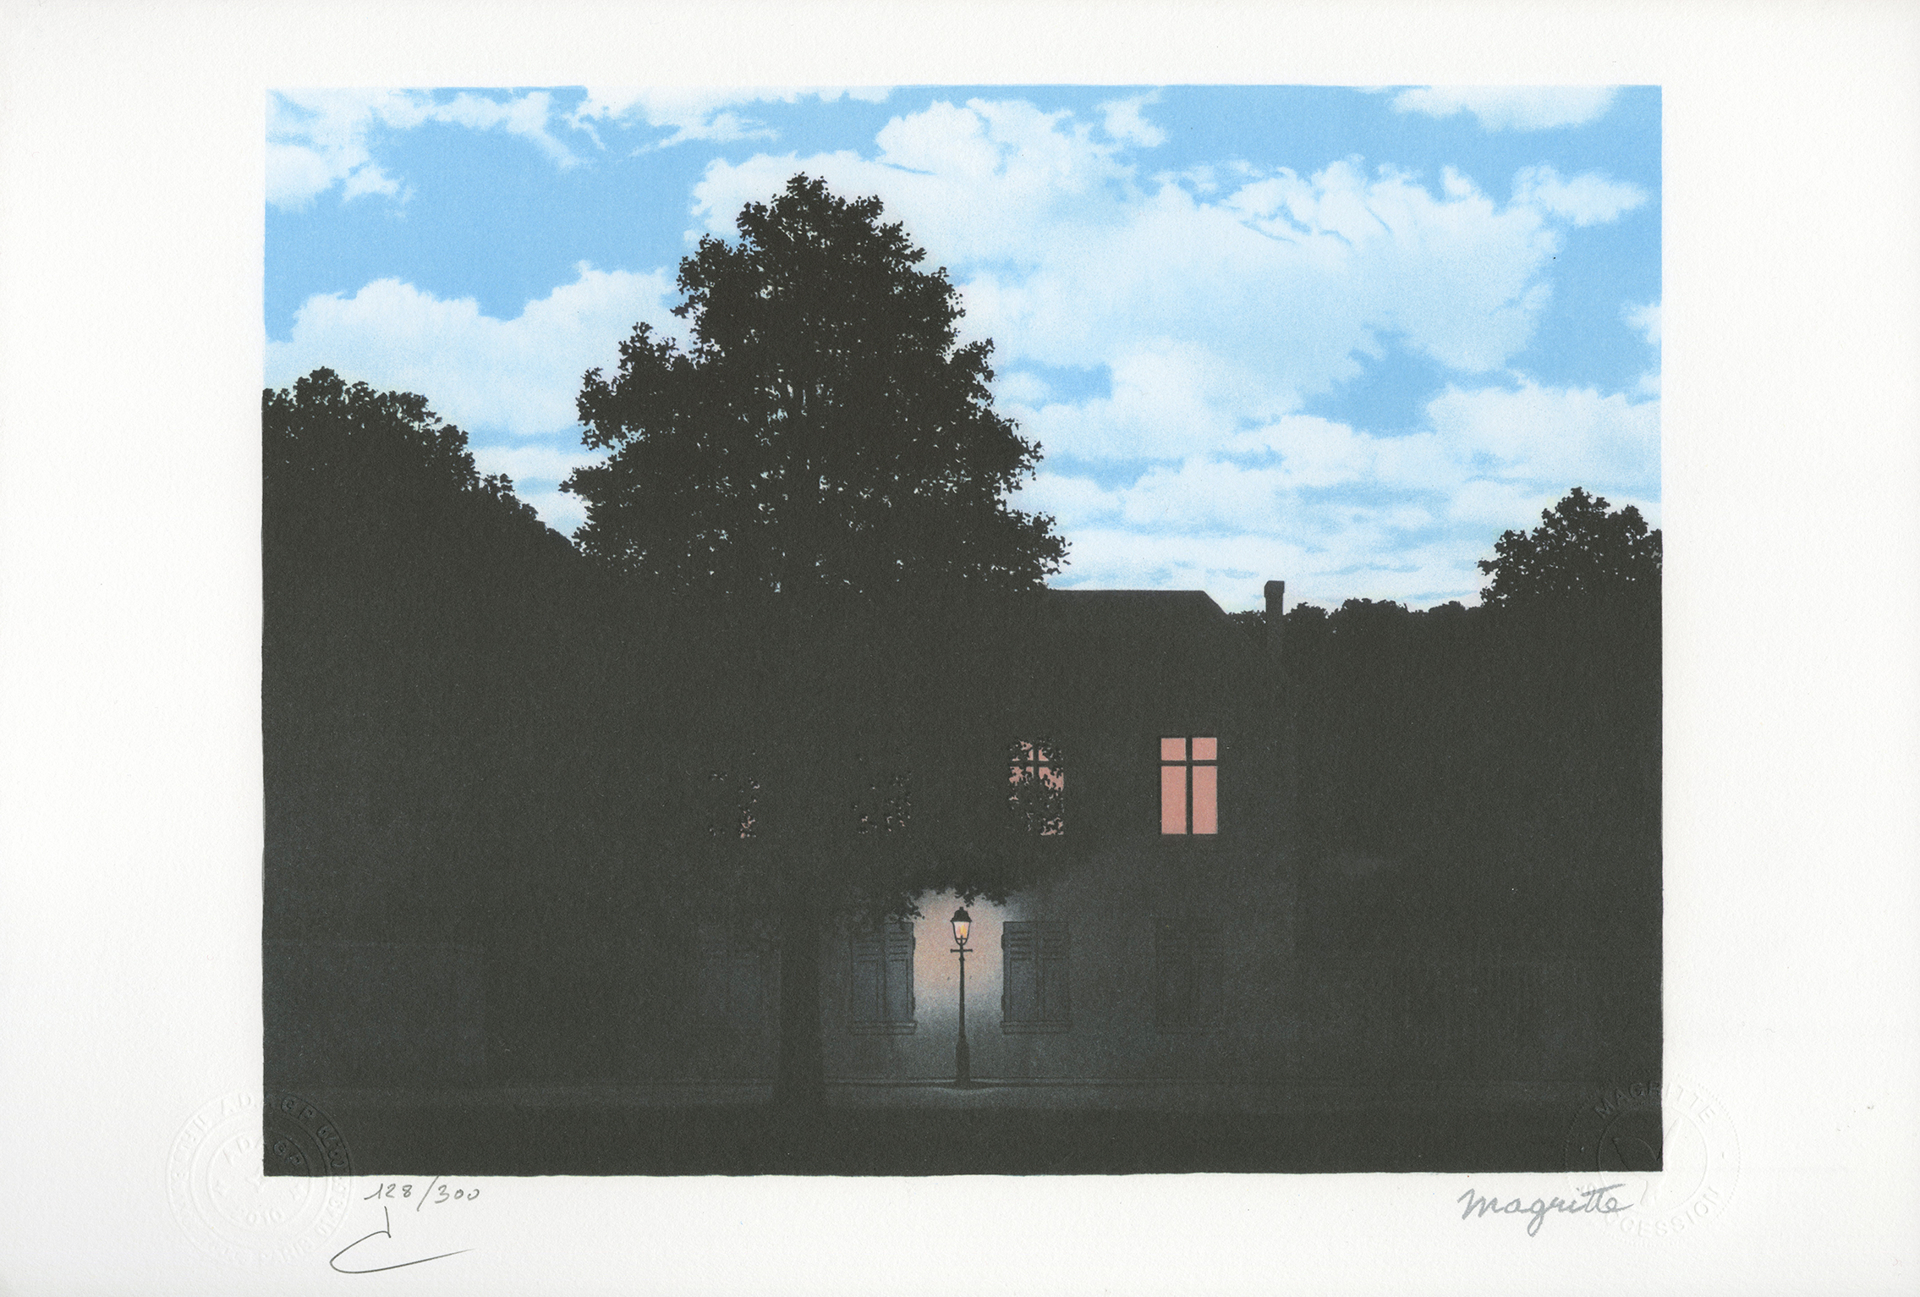 L'Empire des Lumières (The Empire of Light) by Rene Magritte